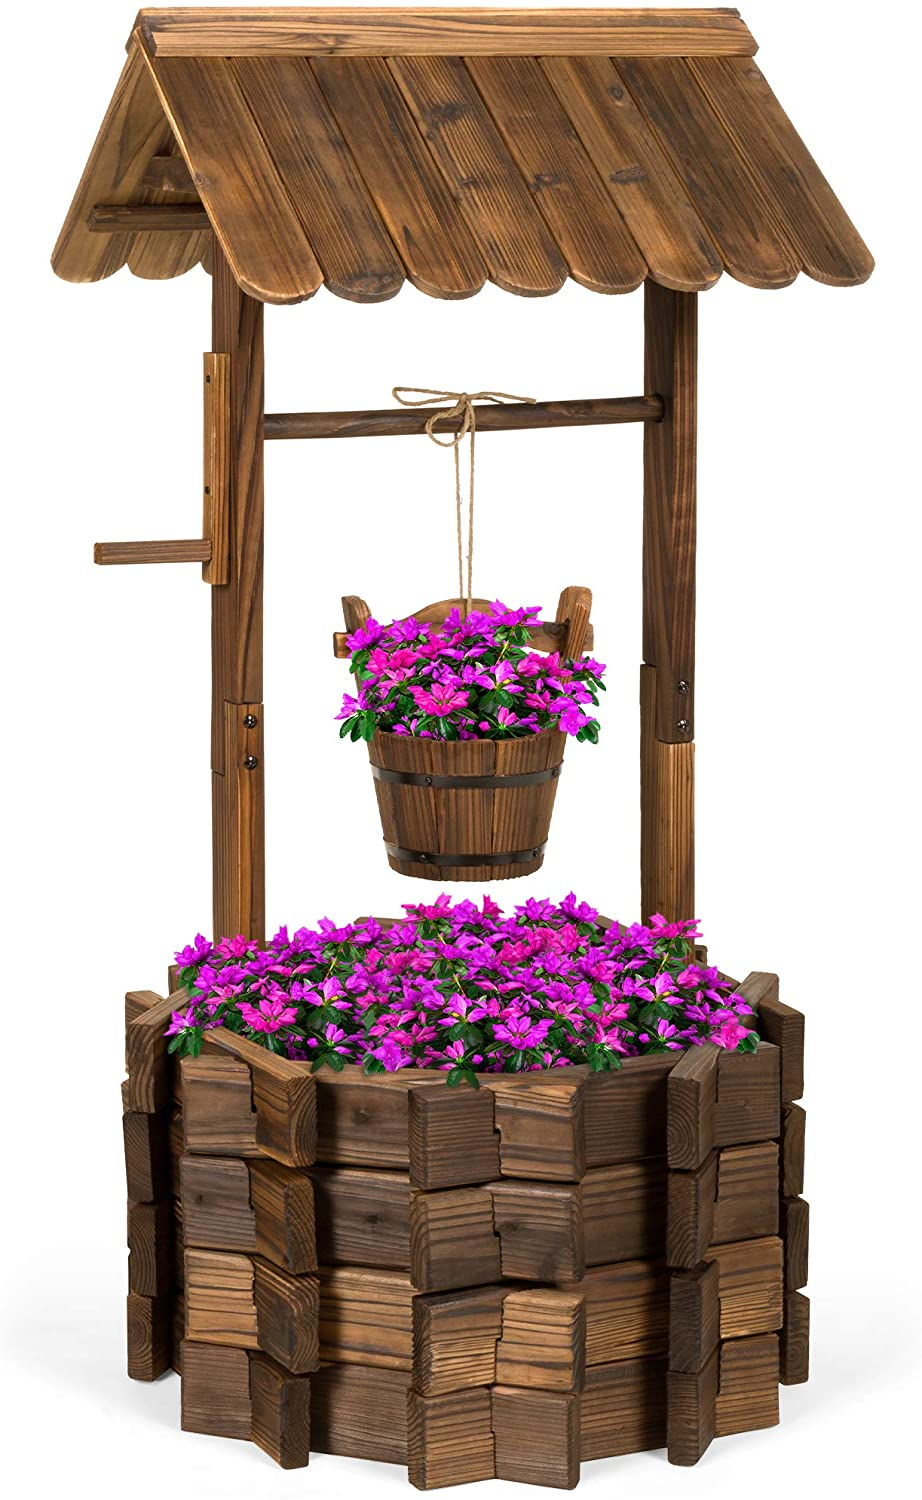 Best Choice Products SKY2399 Outdoor Garden Planters